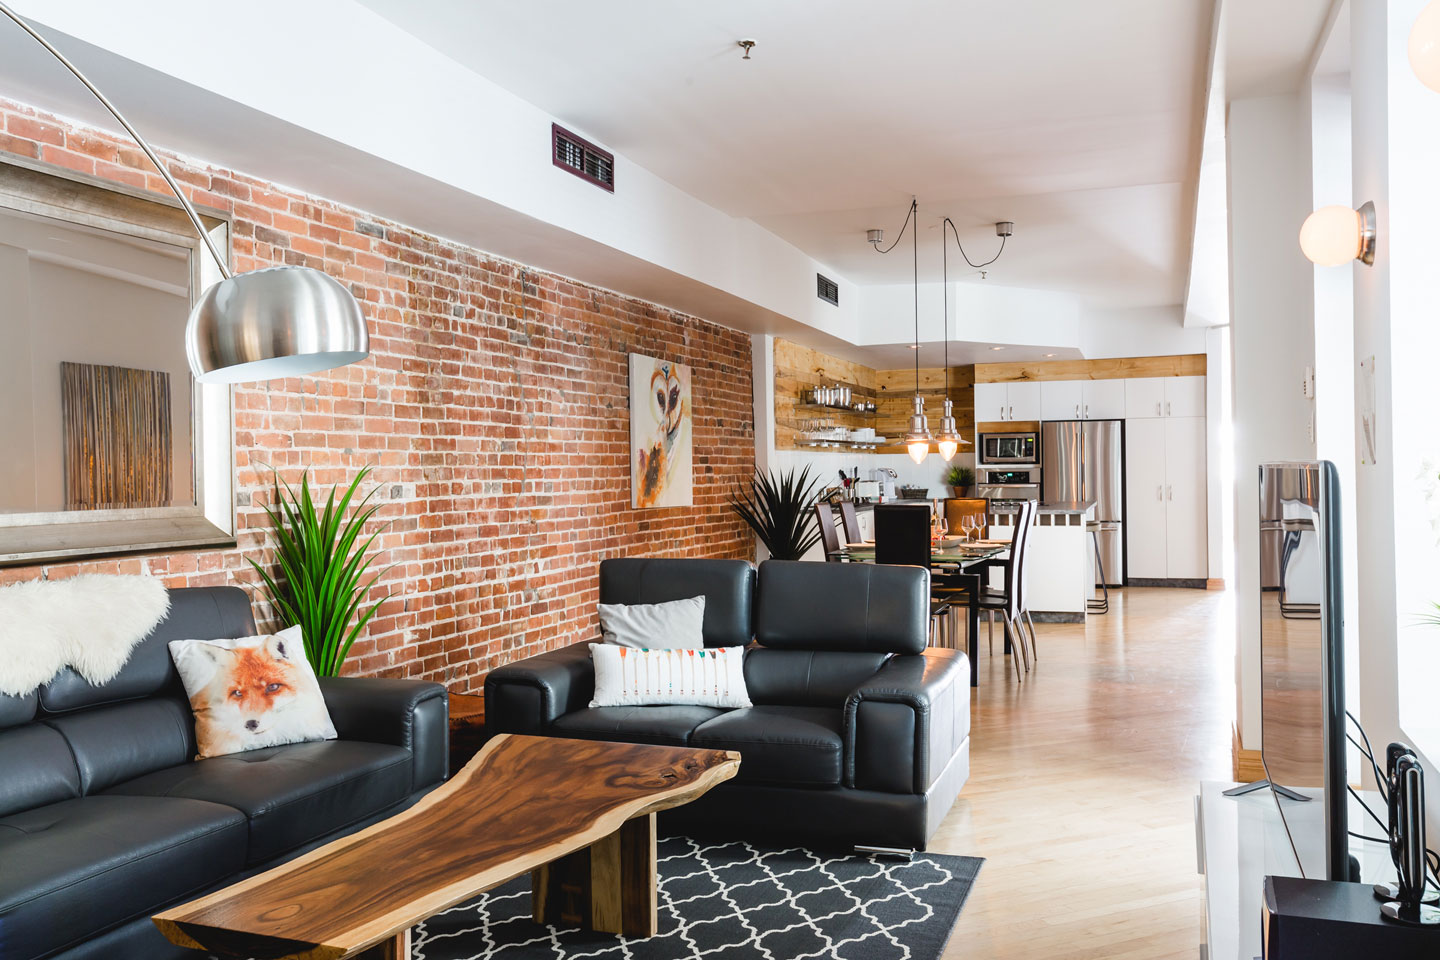 City chalet: roomy open layout living room